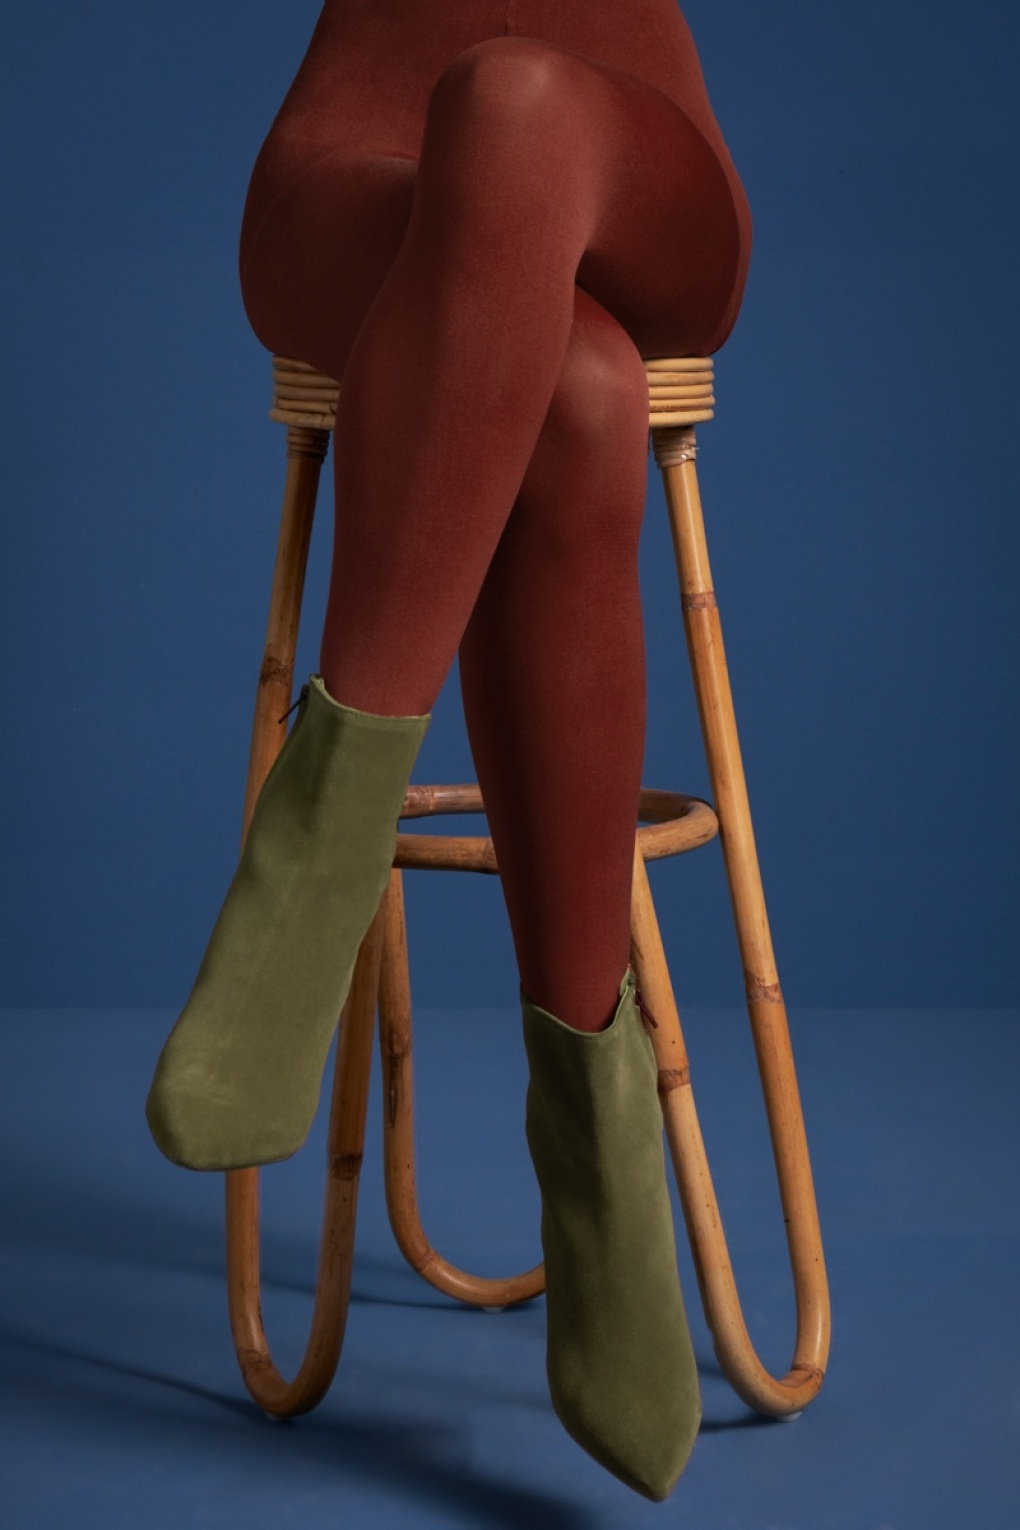 1960s Tights, Stockings, Panty Hose, Knee High Socks 60s Solid Tights in Sandelwood Brown £13.52 AT vintagedancer.com